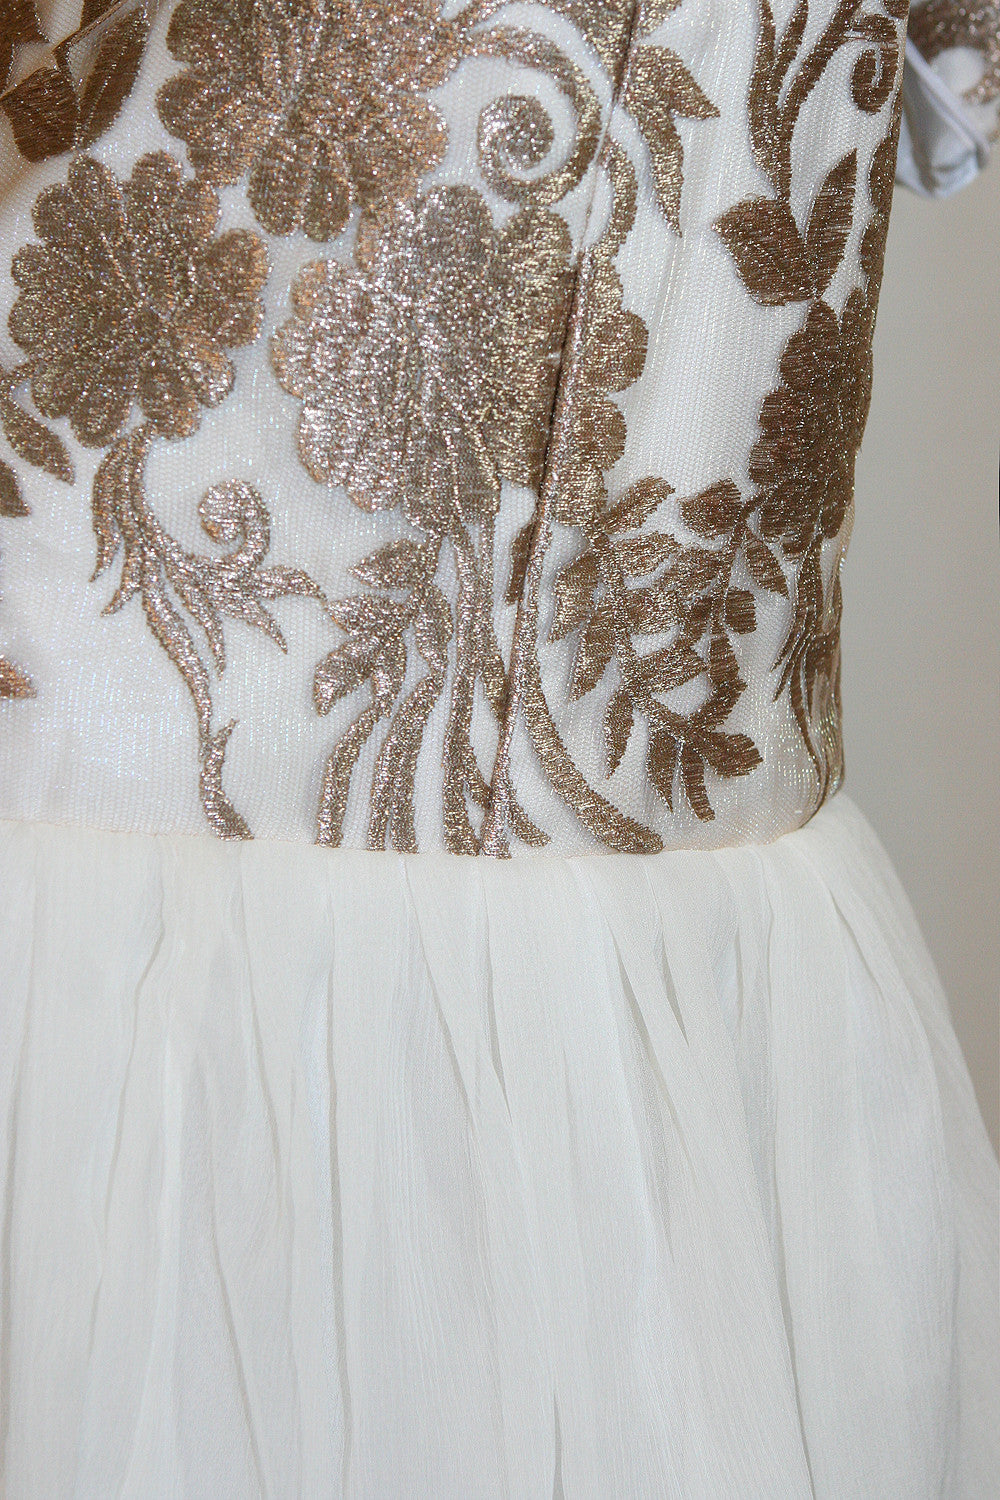 Adorla White and Gold Dress